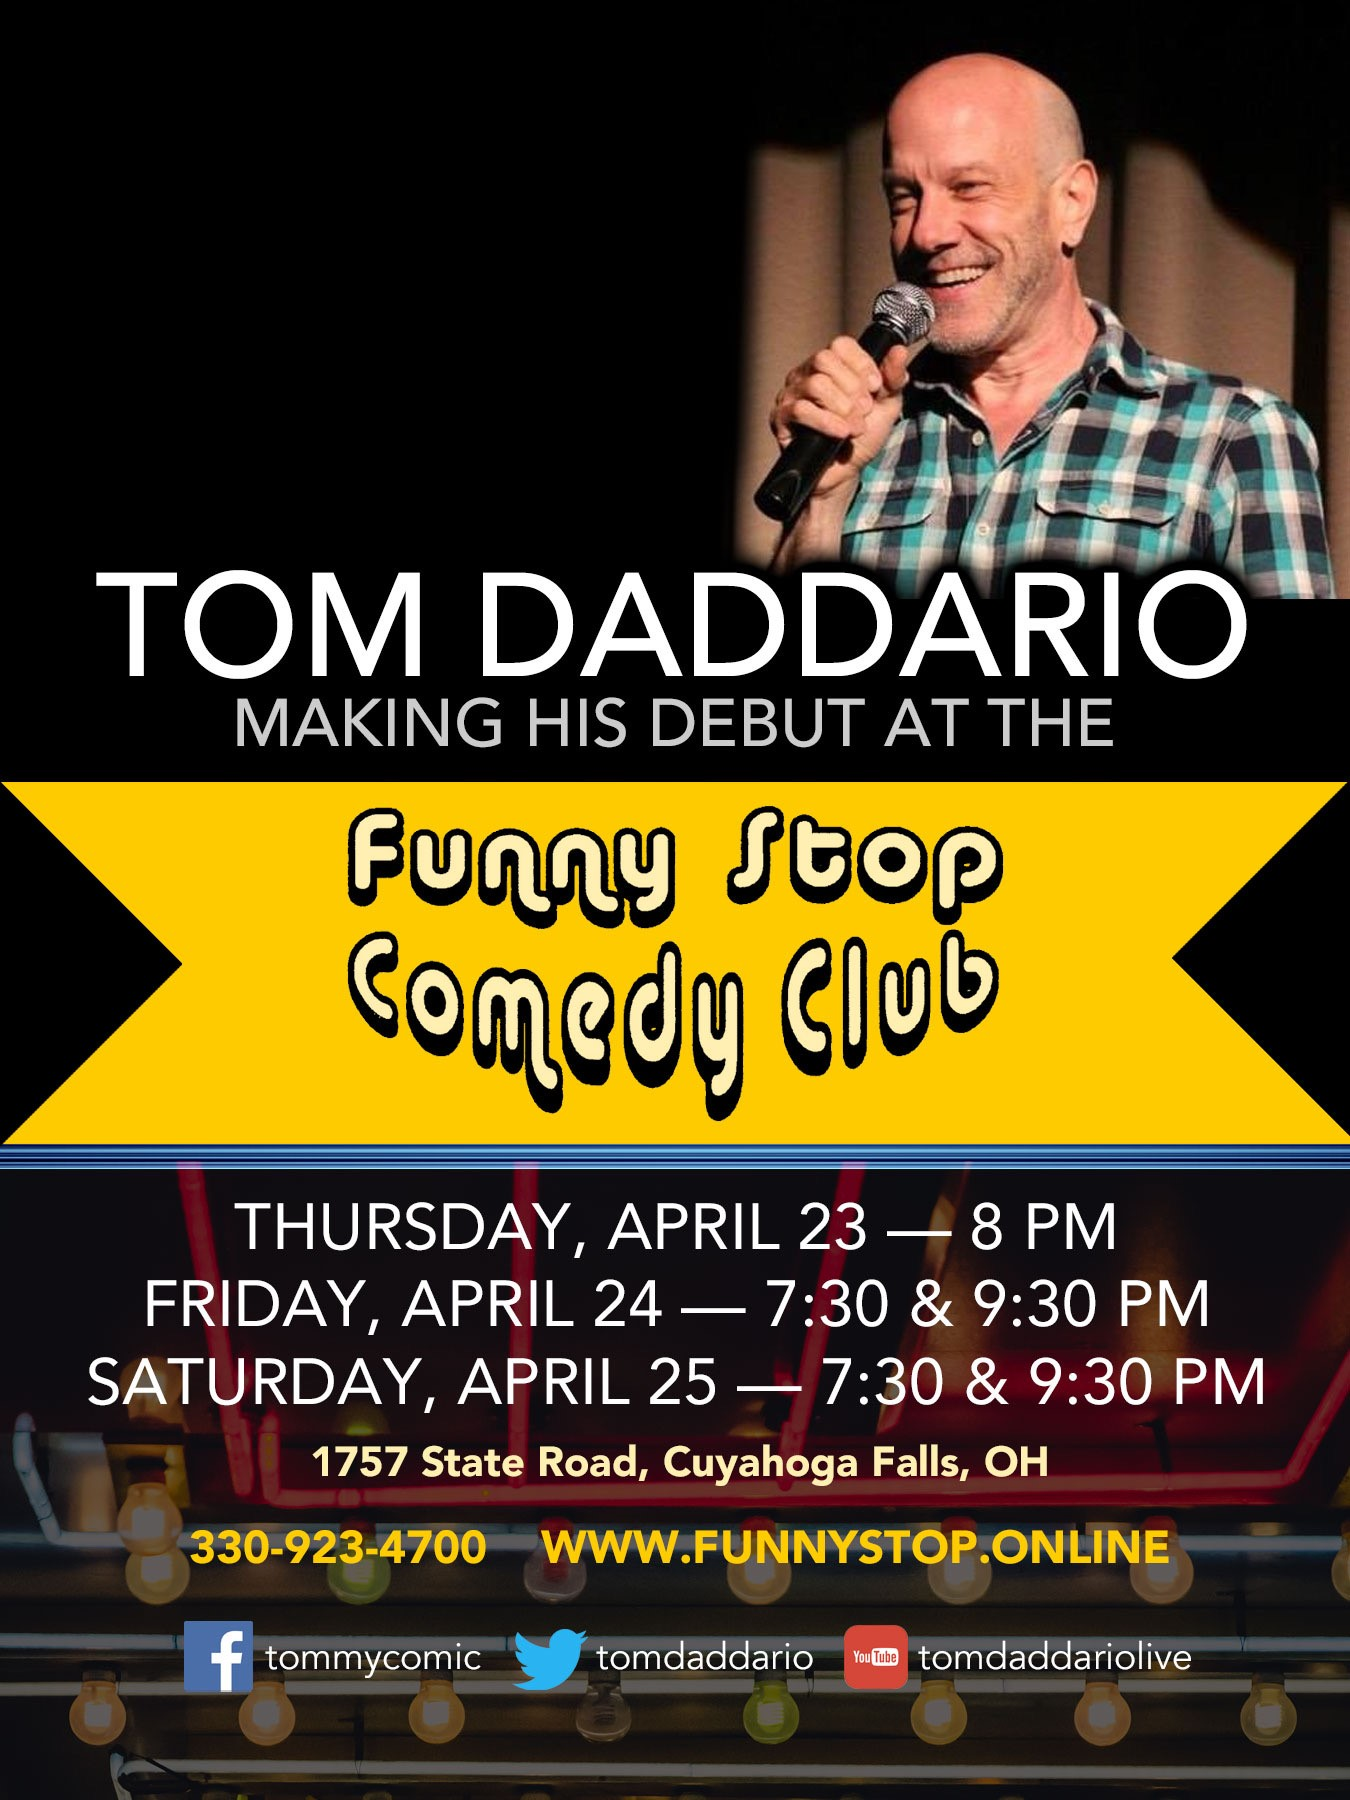 Tom Daddario 9:30 Show  on abr. 25, 21:30@Funny Stop Comedy Club - Buy tickets and Get information on Funny Stop funnystop.online